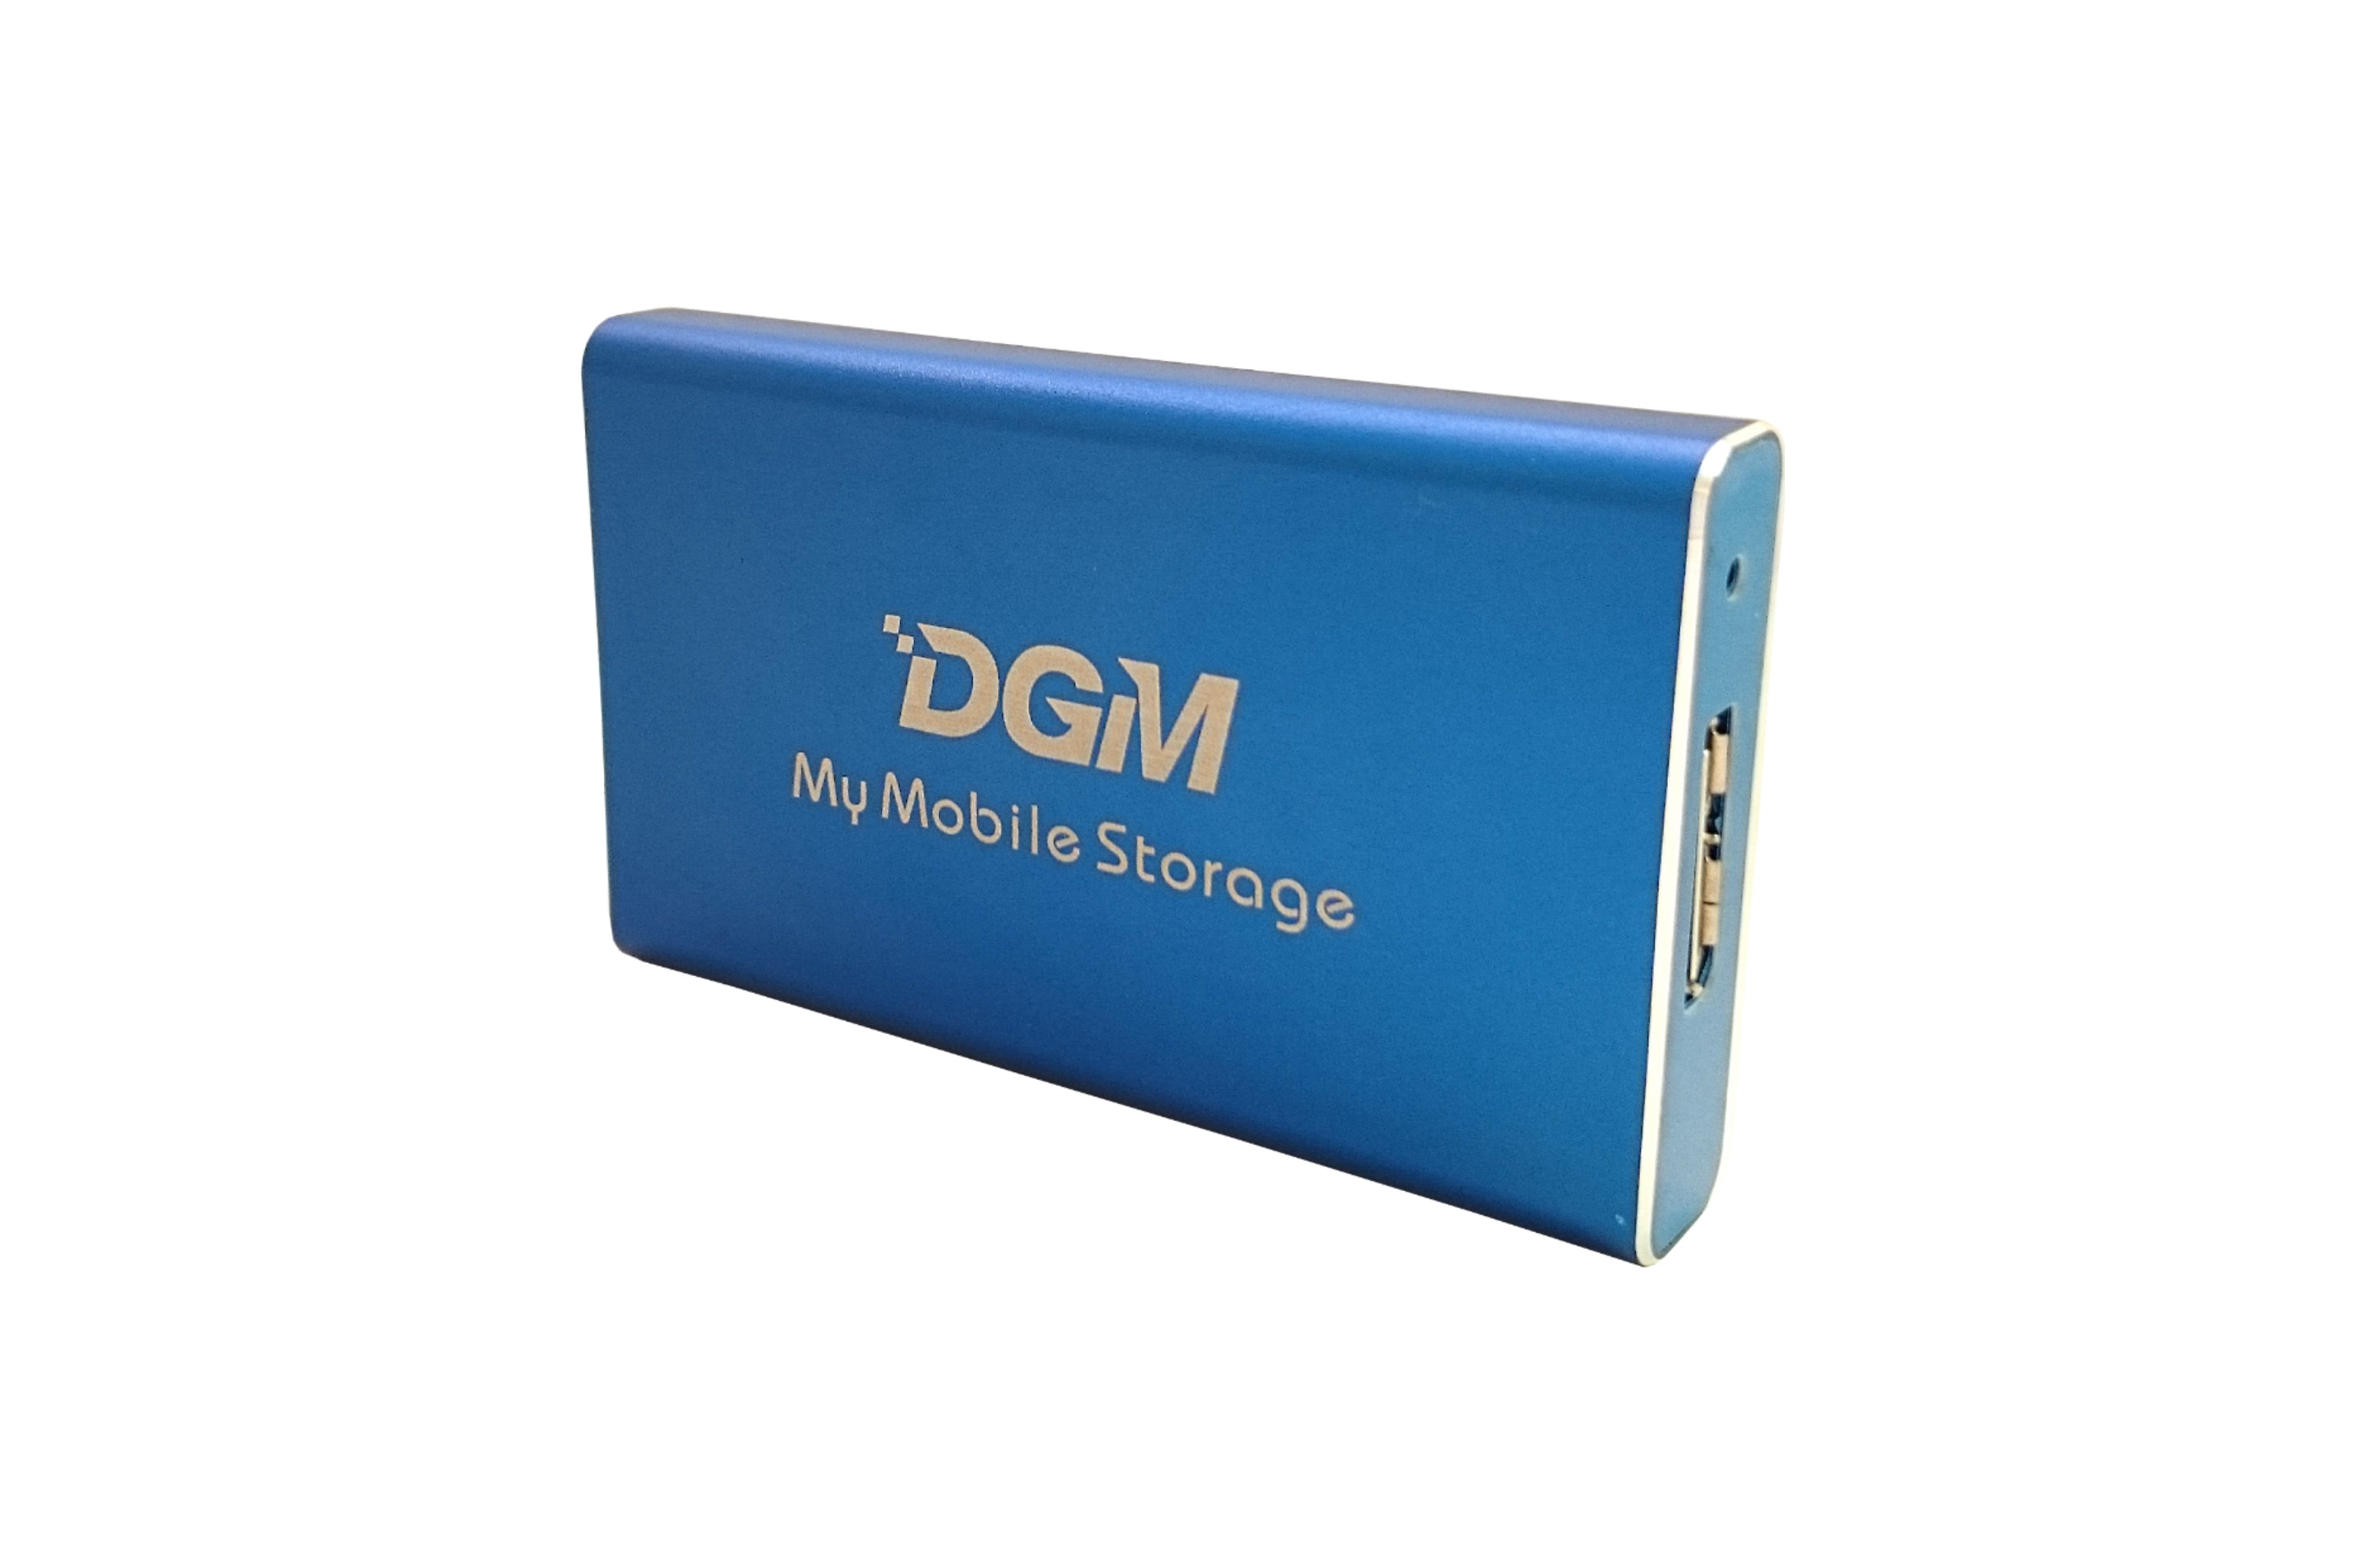 CMYK - DGM My Mobile Storage - MMS256BL